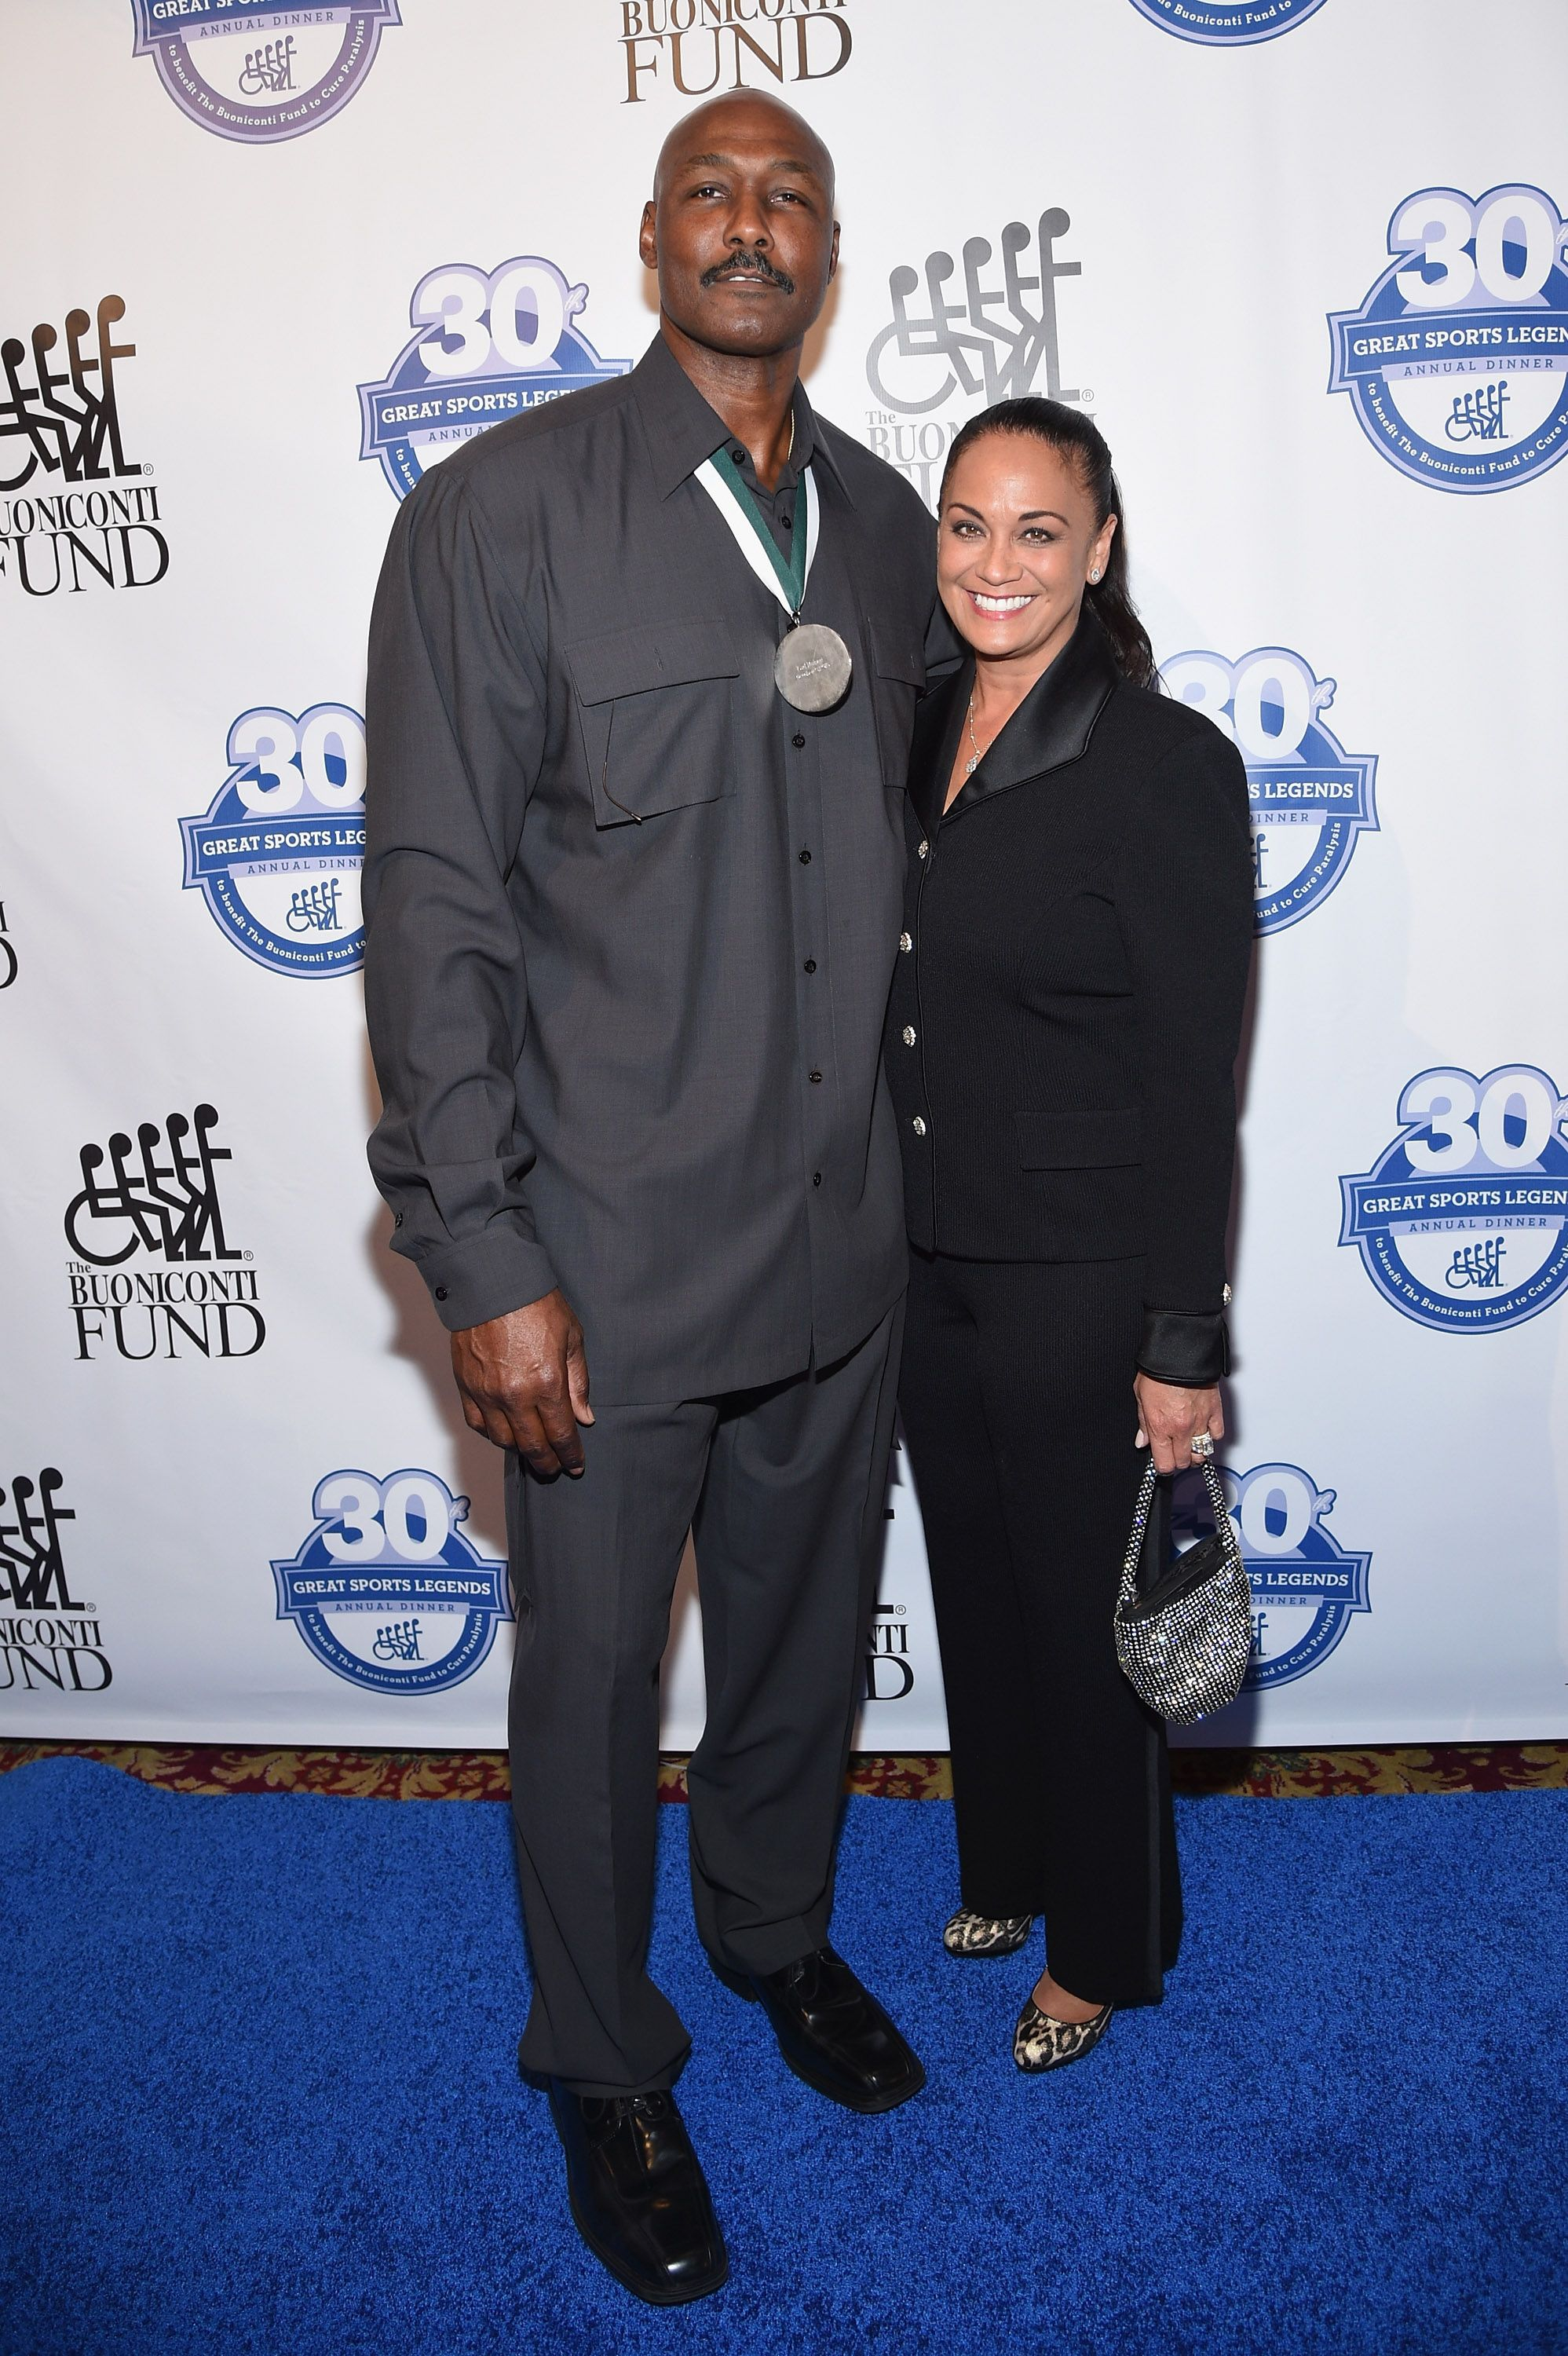 Karl Malone and his wife Kay Kinsey Malone attend the 30th Annual Great Sports Legends Dinner to benefit The Buoniconti Fund to Cure Paralysis at The Waldorf Astoria on October 6, 2015 in New York City. | Source: Getty Images